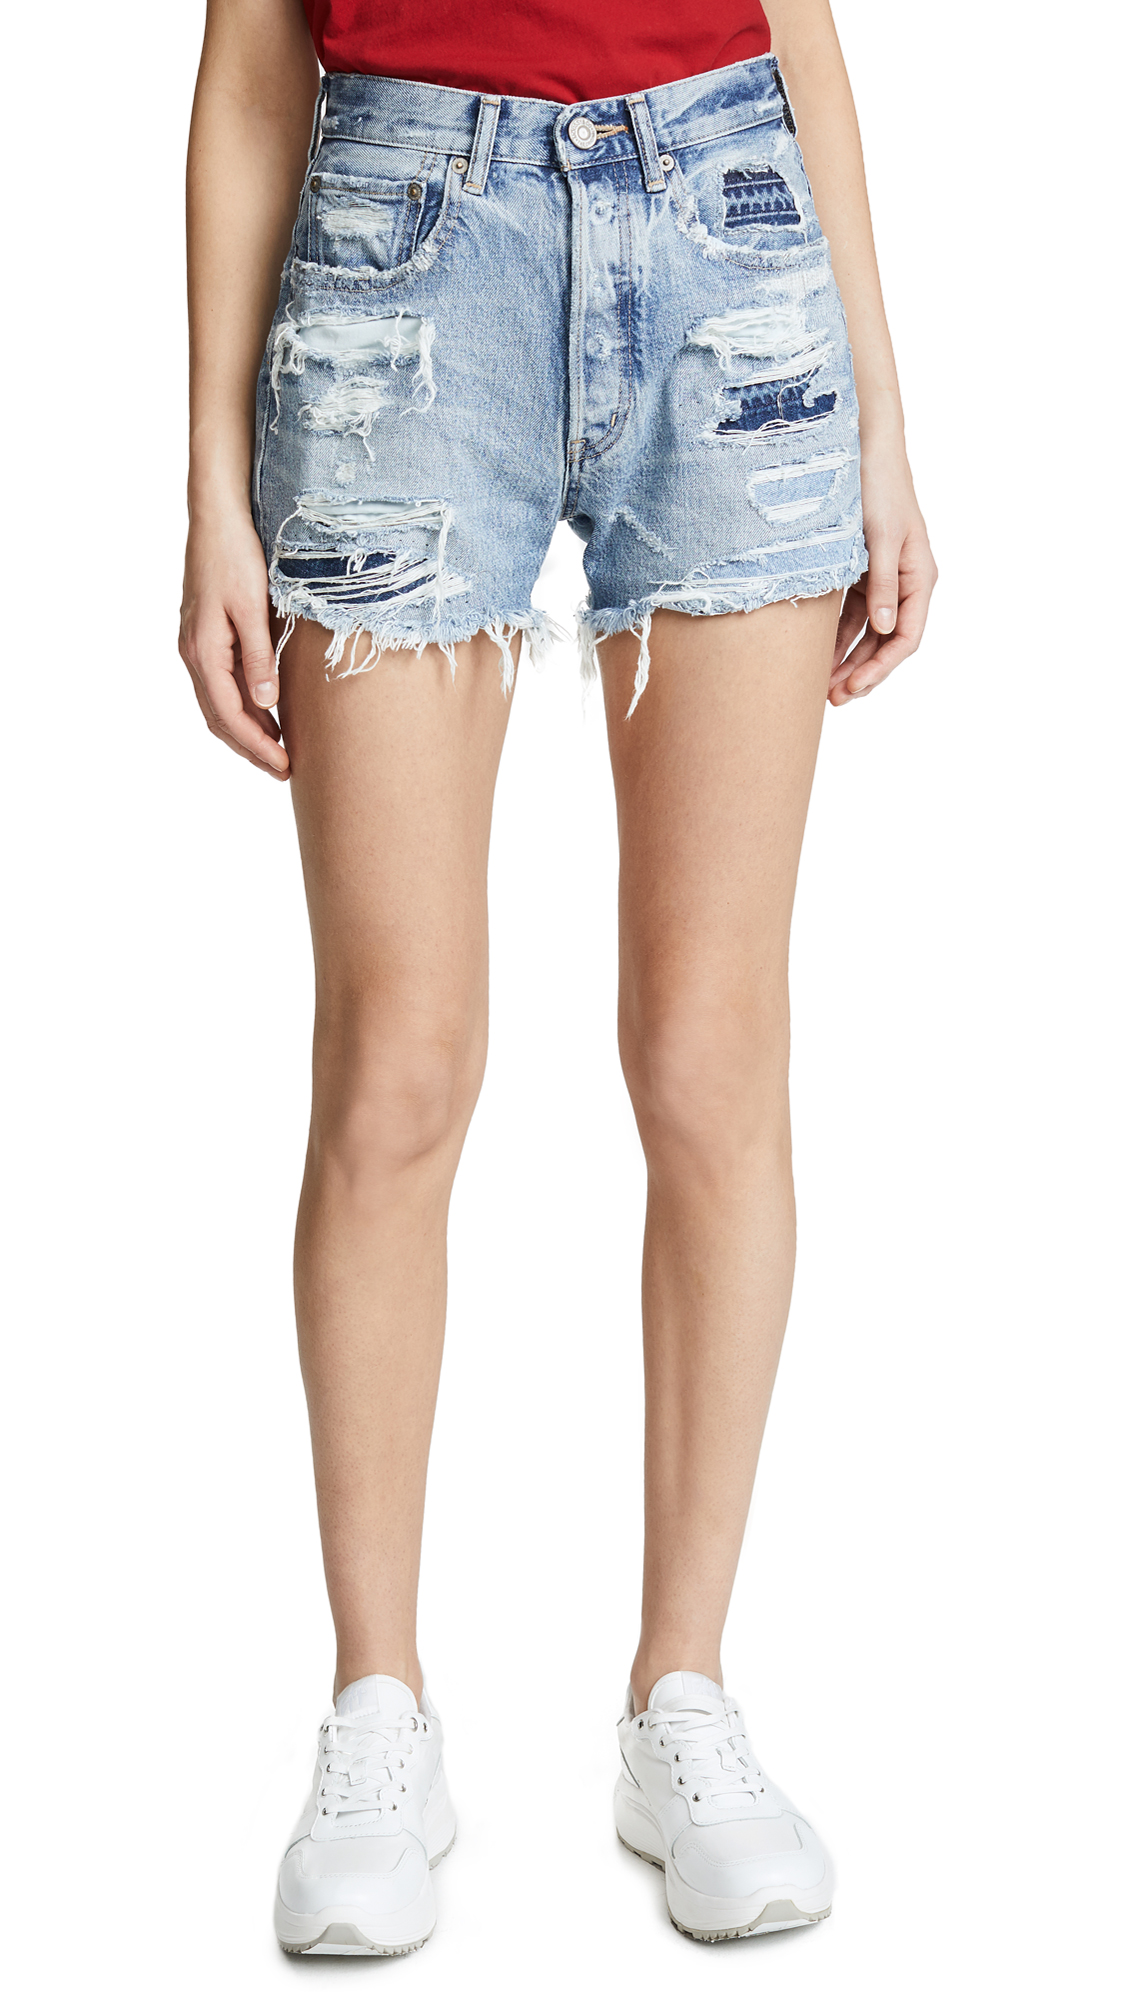 MOUSSY MV JONES PATCHED HAND REPAIR SHORTS